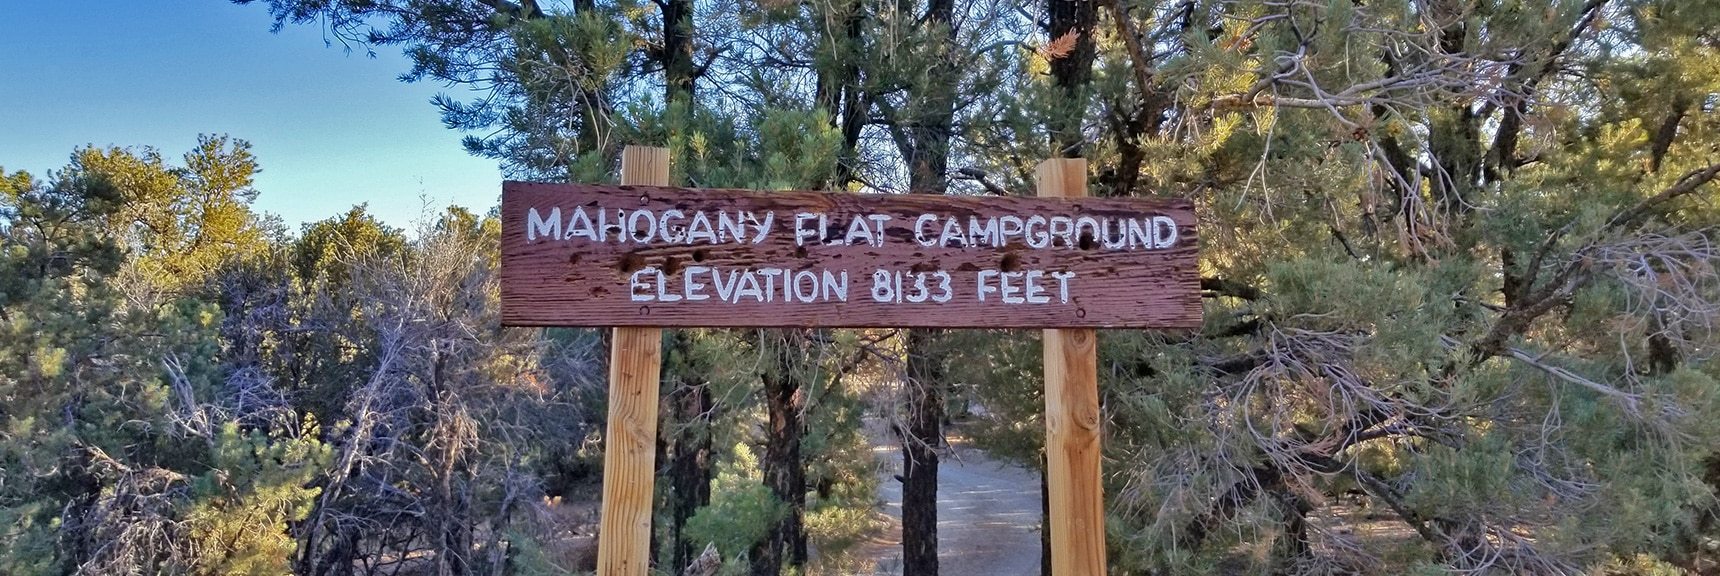 Arrival at Mahogany Flat Campground, 8133ft Elevation   Telescope Peak Summit from Wildrose Charcoal Kilns Parking Area, Panamint Mountains, Death Valley National Park, California